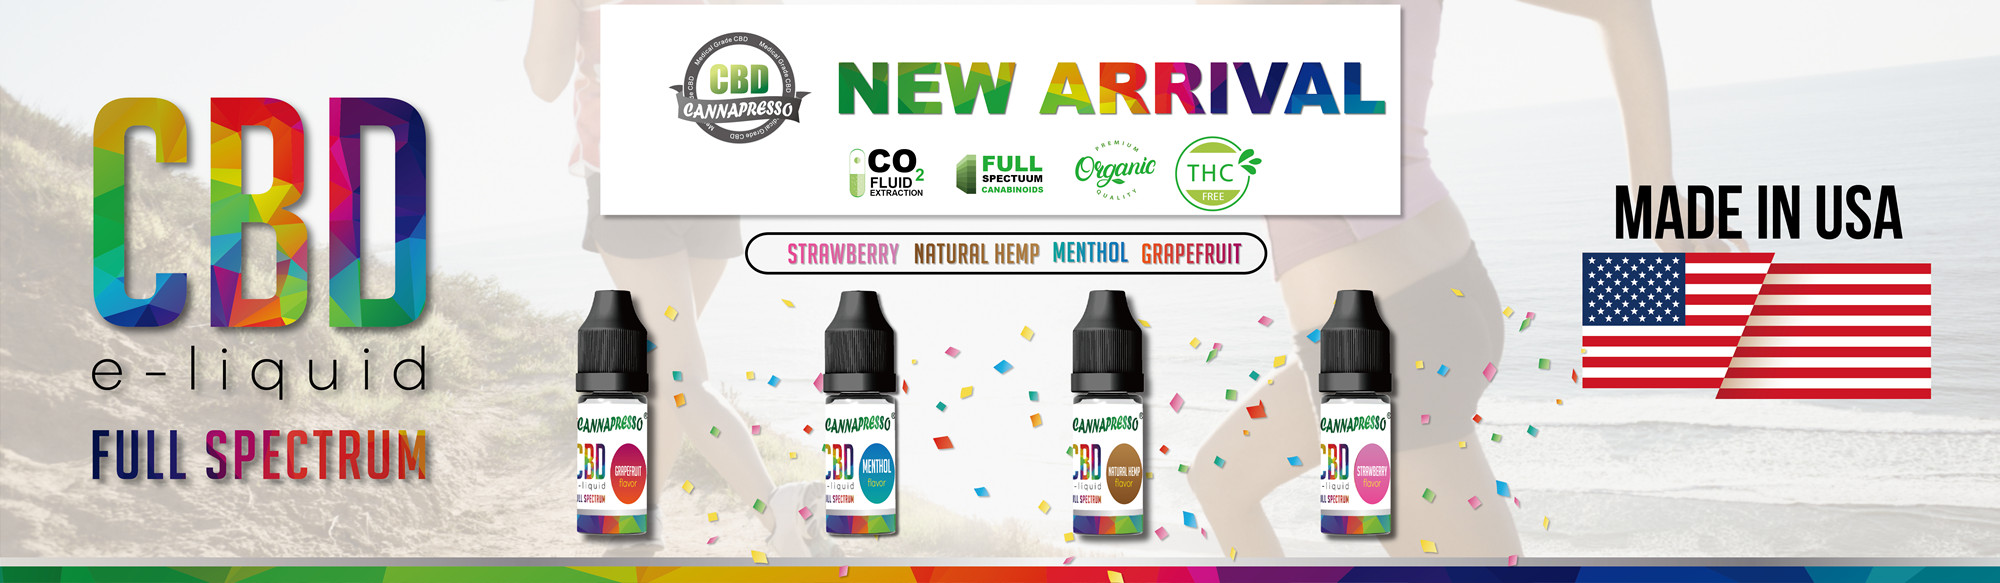 full spectrum CBD eliquid